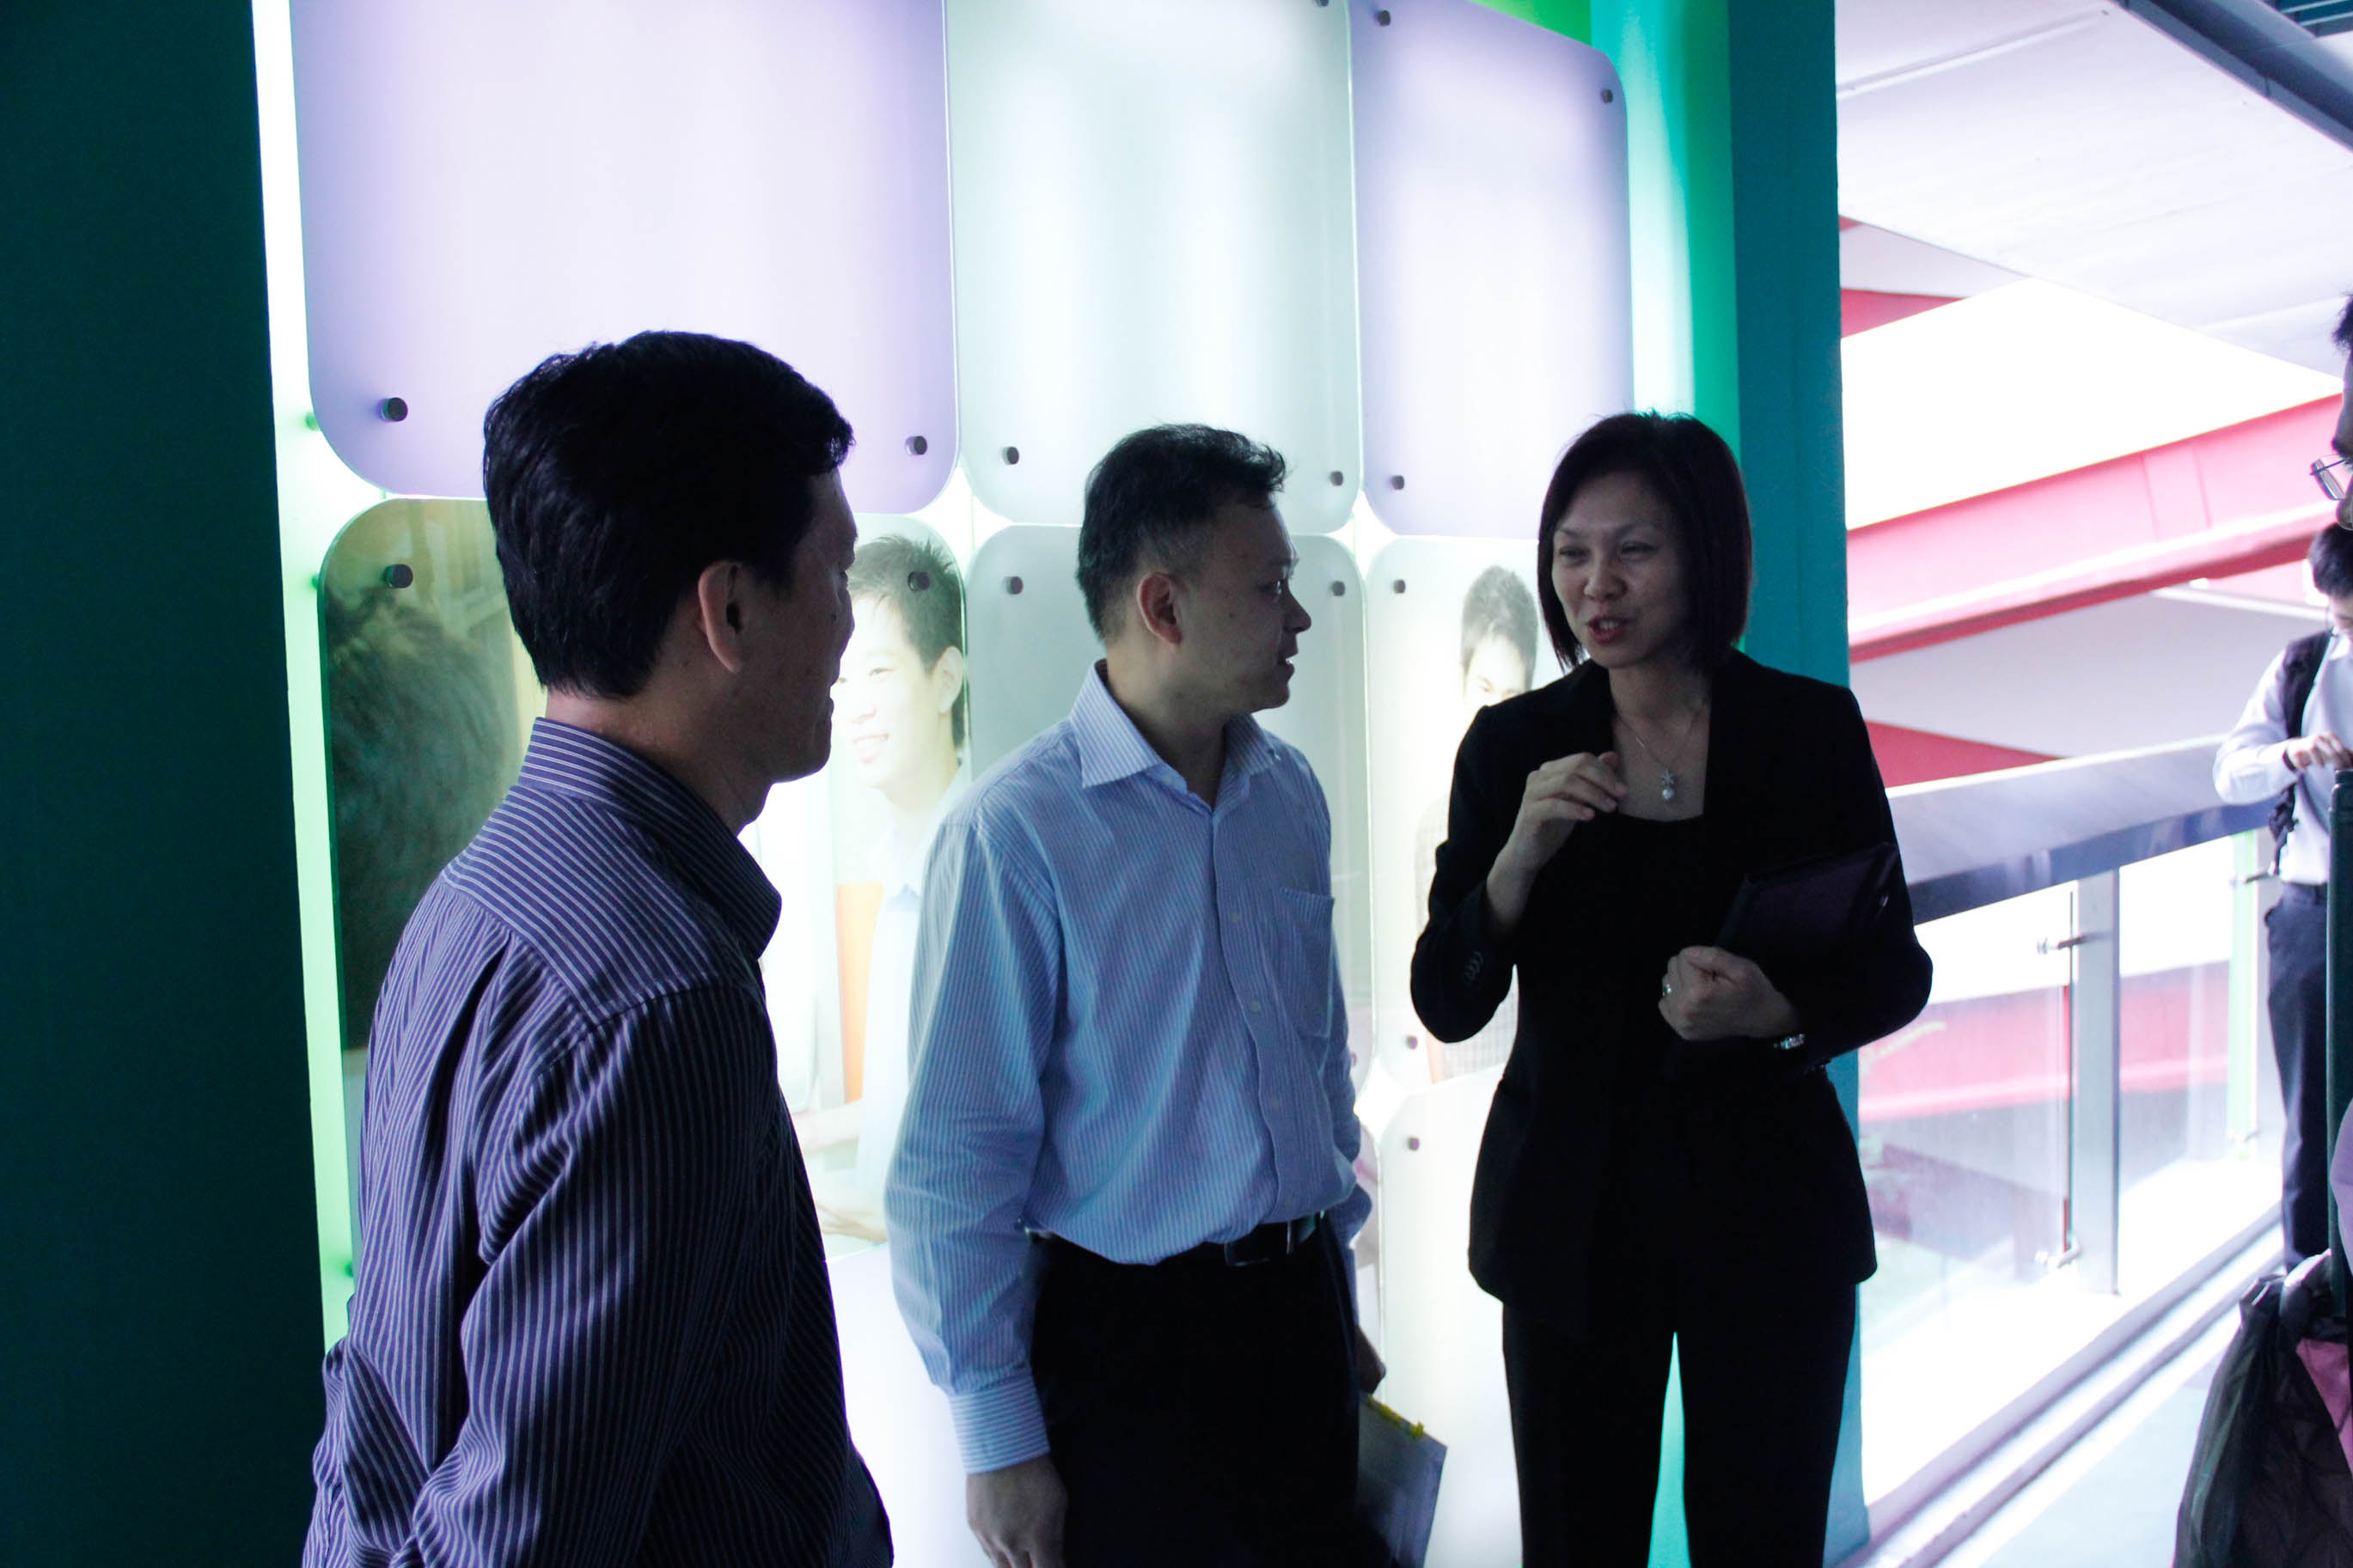 Mr Liew, Mr Ho and Ms Phua having conversation after the event proper